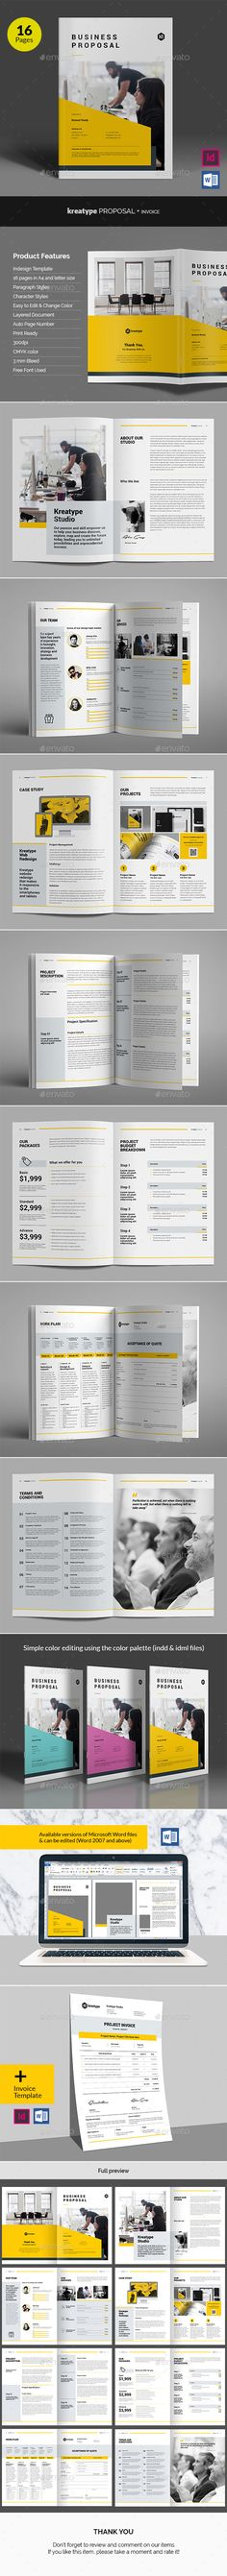 SEO Company Business Project Proposal Templates